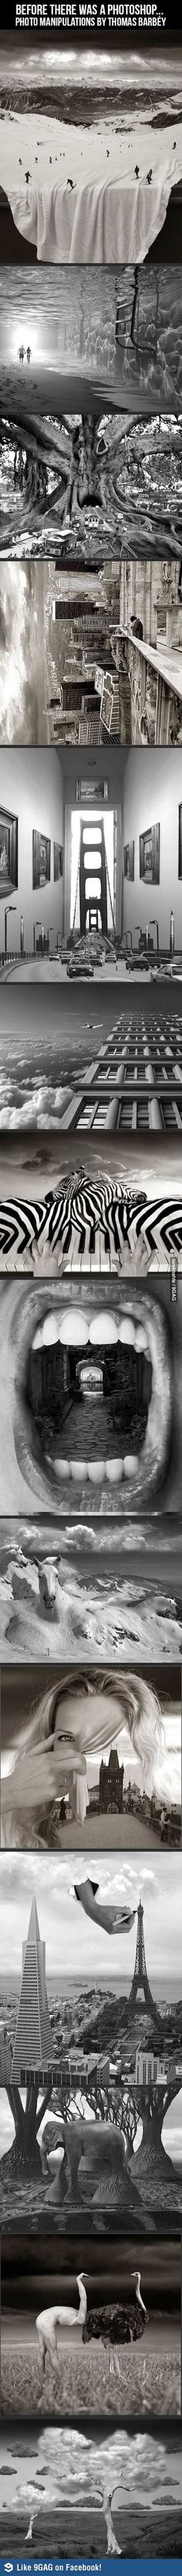 photo manipulations by thomas barbey. If only these things still took this kind of skill.